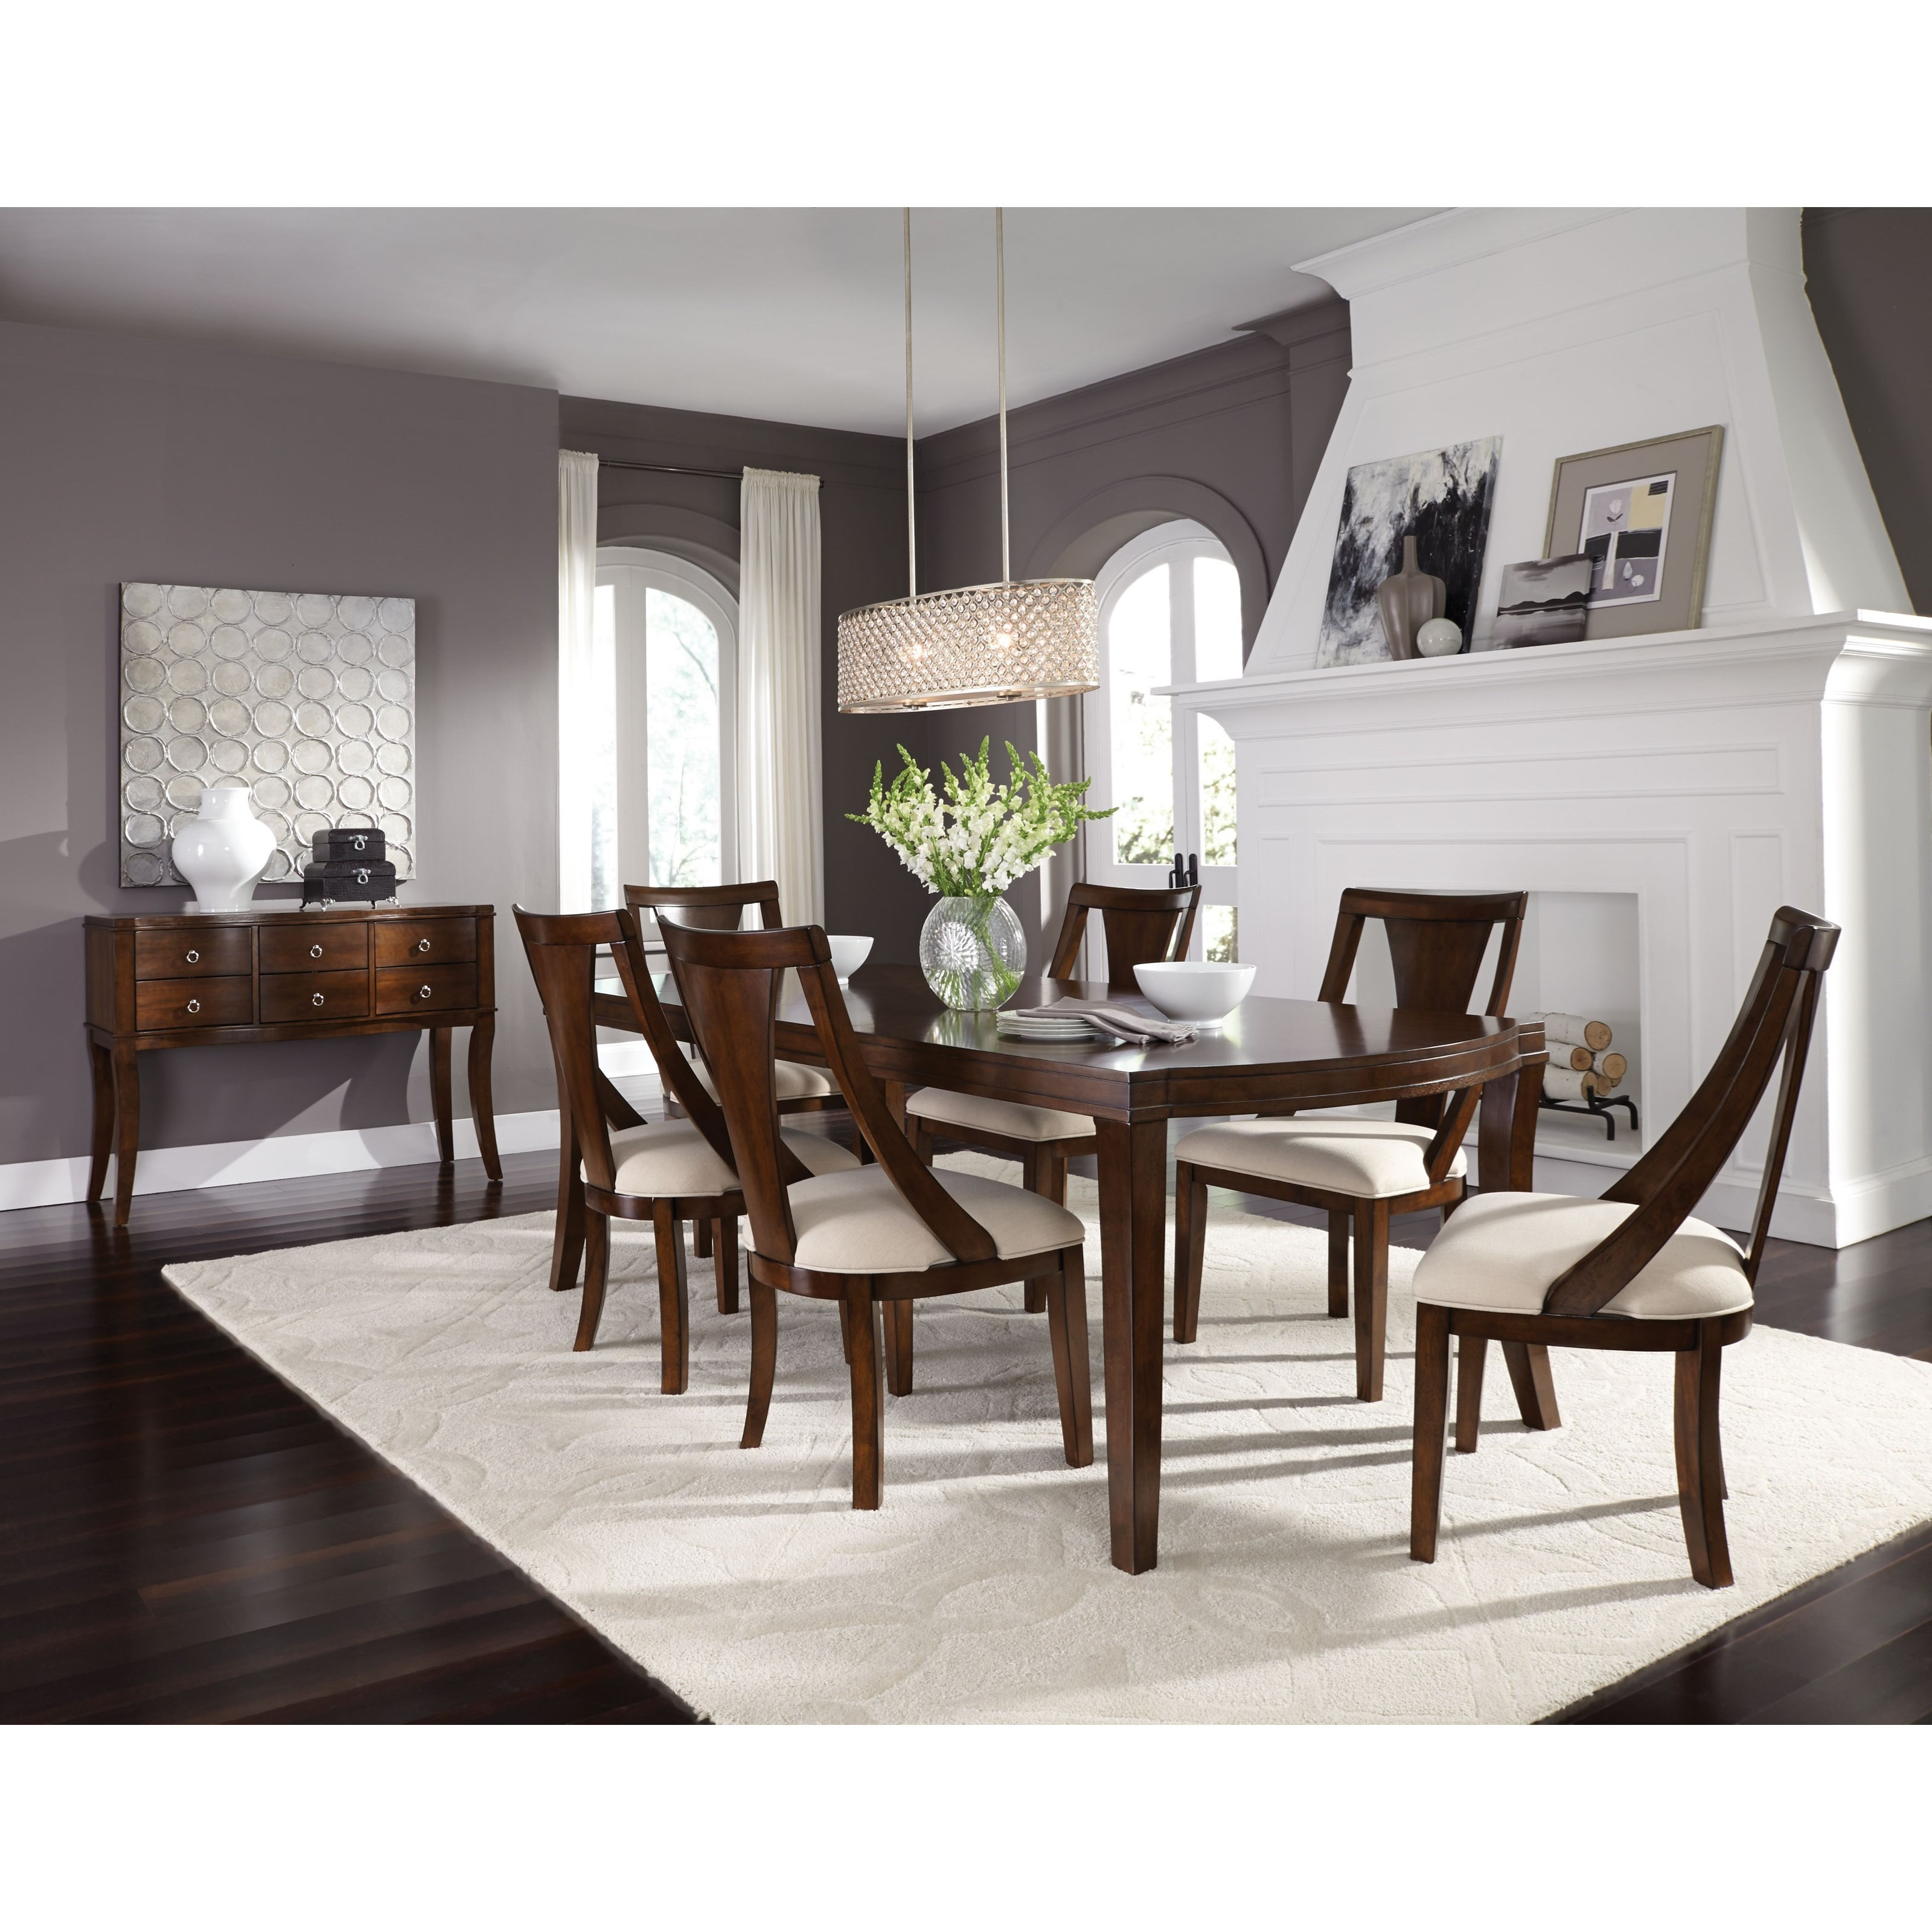 Standard Furniture Insignia Contemporary Dining Room Group